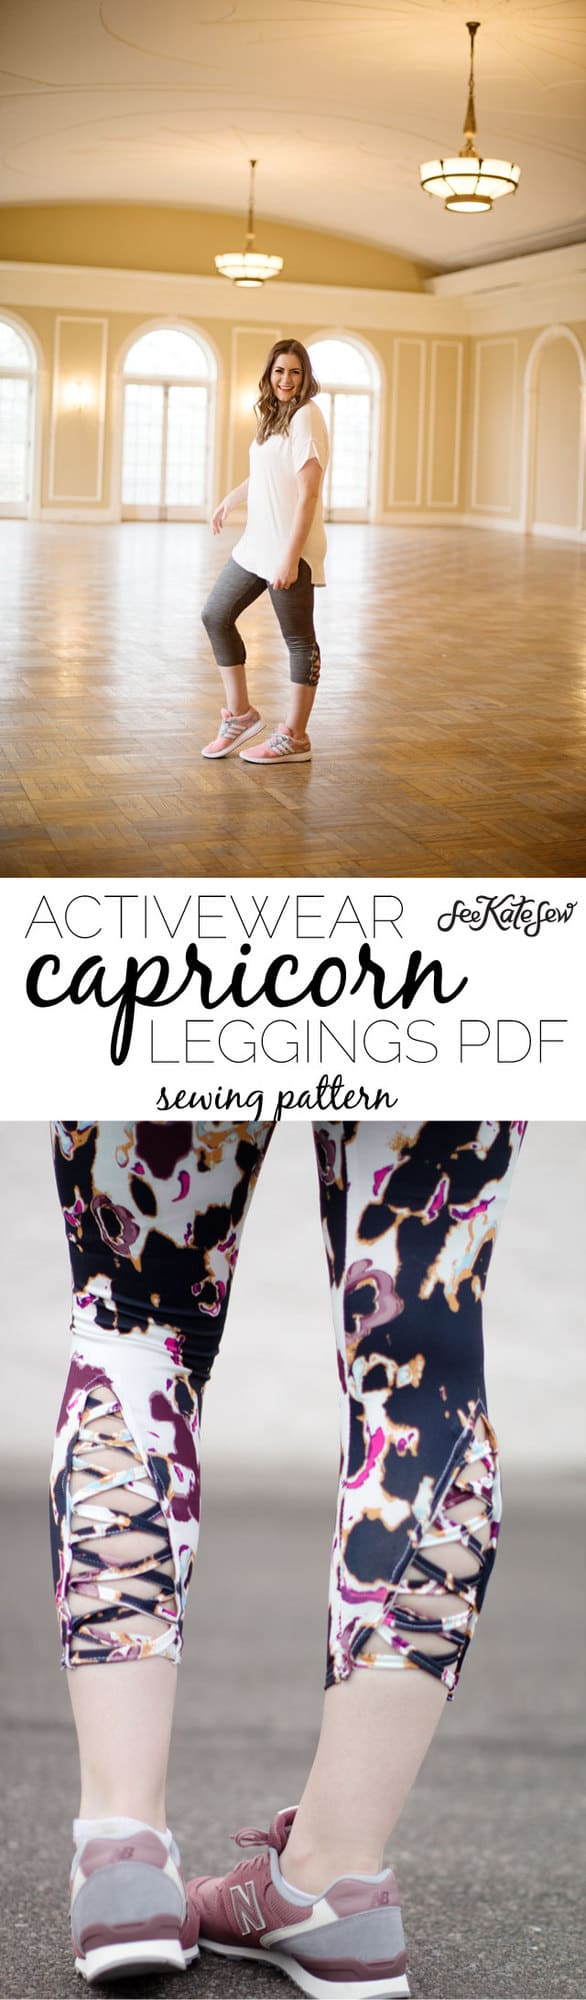 Activewear leggings PDF | DIY Workout Pants Sewing Pattern | new pattern! The CAPRICORN leggings! + RELEASE DAY SALE | handmade leggings | diy legging tutorial | easy diy leggings | diy activewear | handmade activewear | sewing patterns | diy leggings pattern || see Kate sew #leggingspattern #diyleggings #handmadeclothing